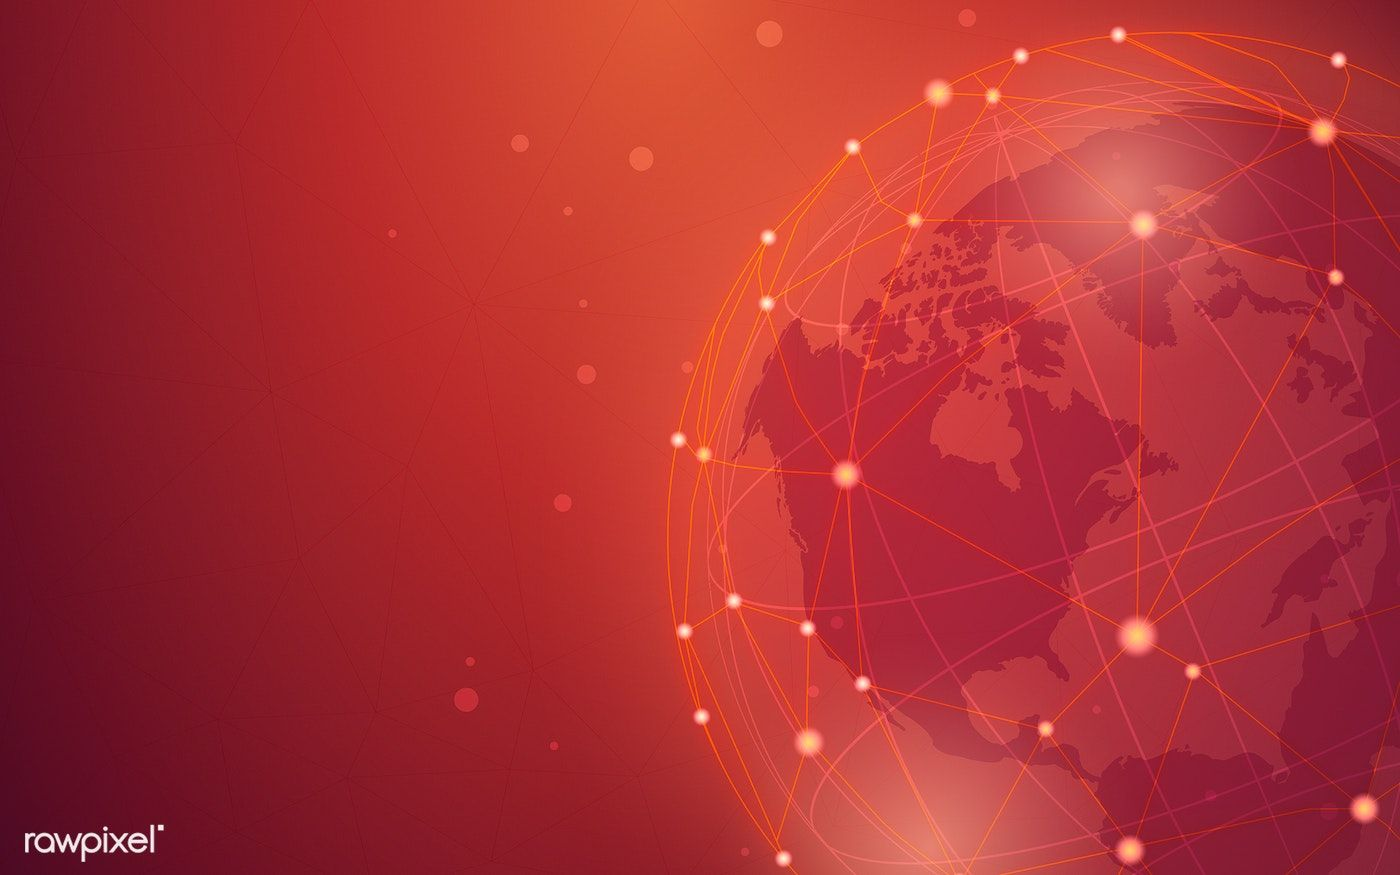 Worldwide Connection Red Background Illustration Vector Free Image By Rawpixel Com Kappy Kappy Red Background Vector Free Illustration